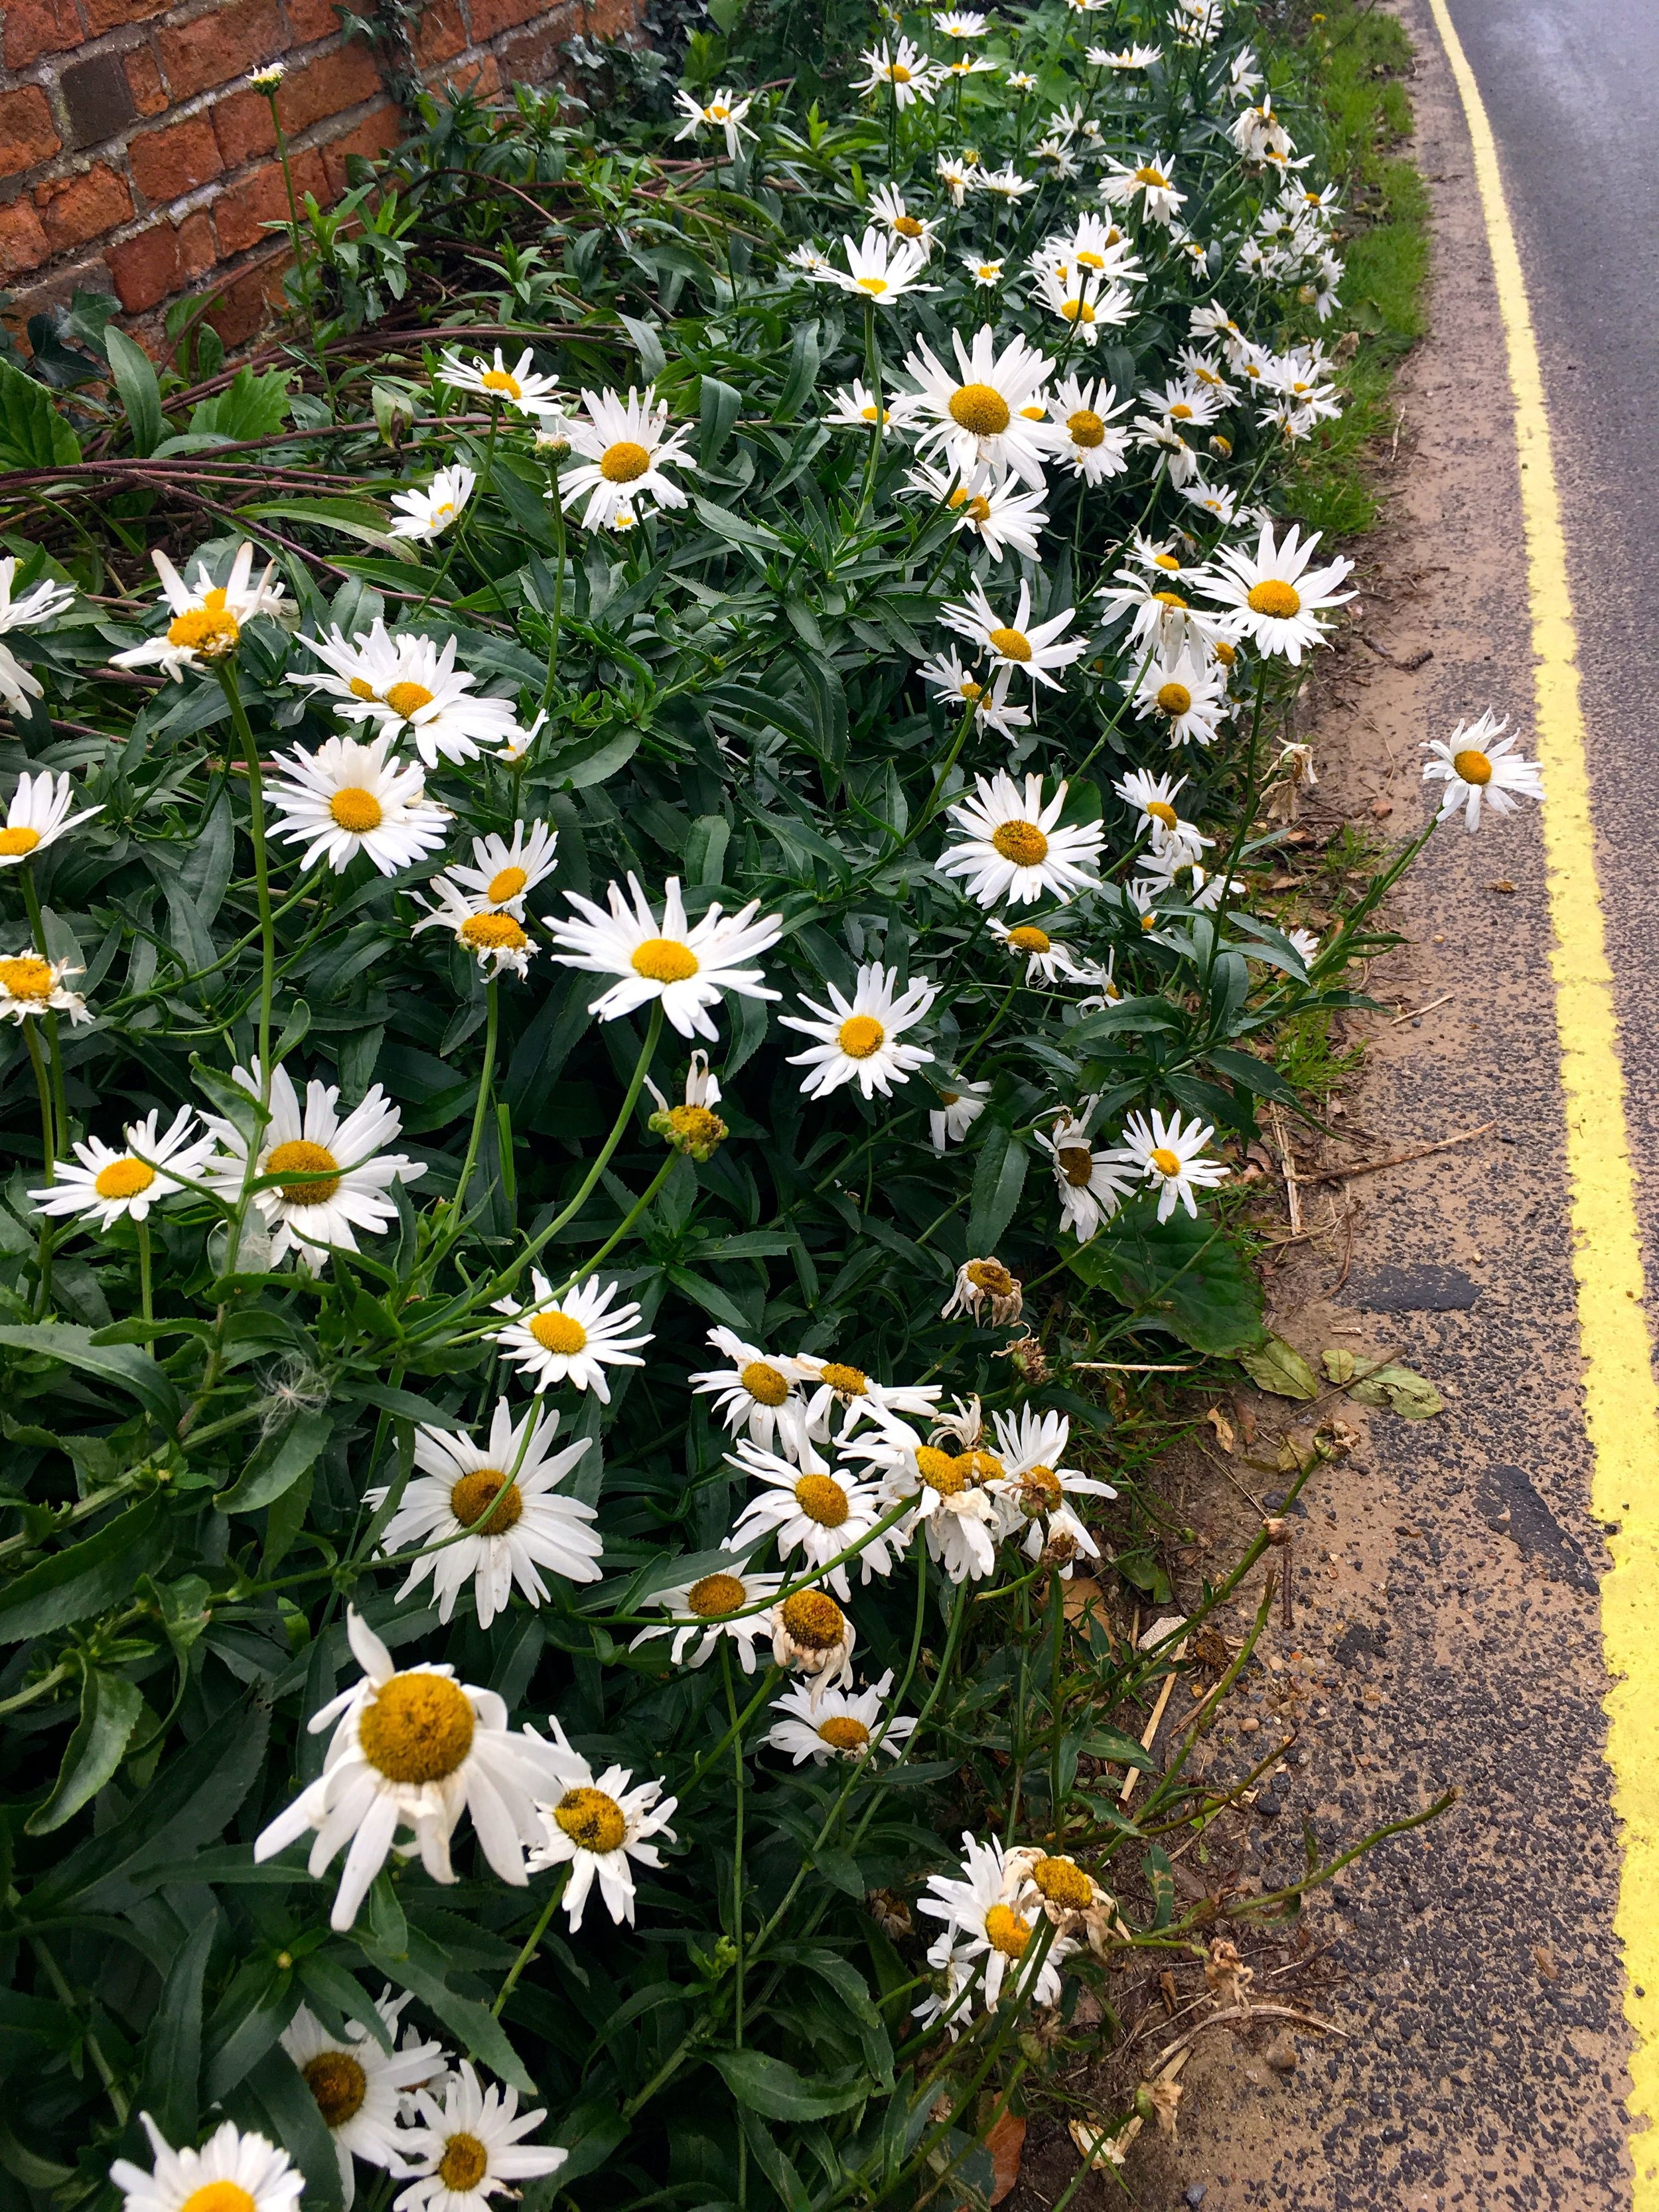 a yellow line to protect the flowers - and the villagers sanity no doubt